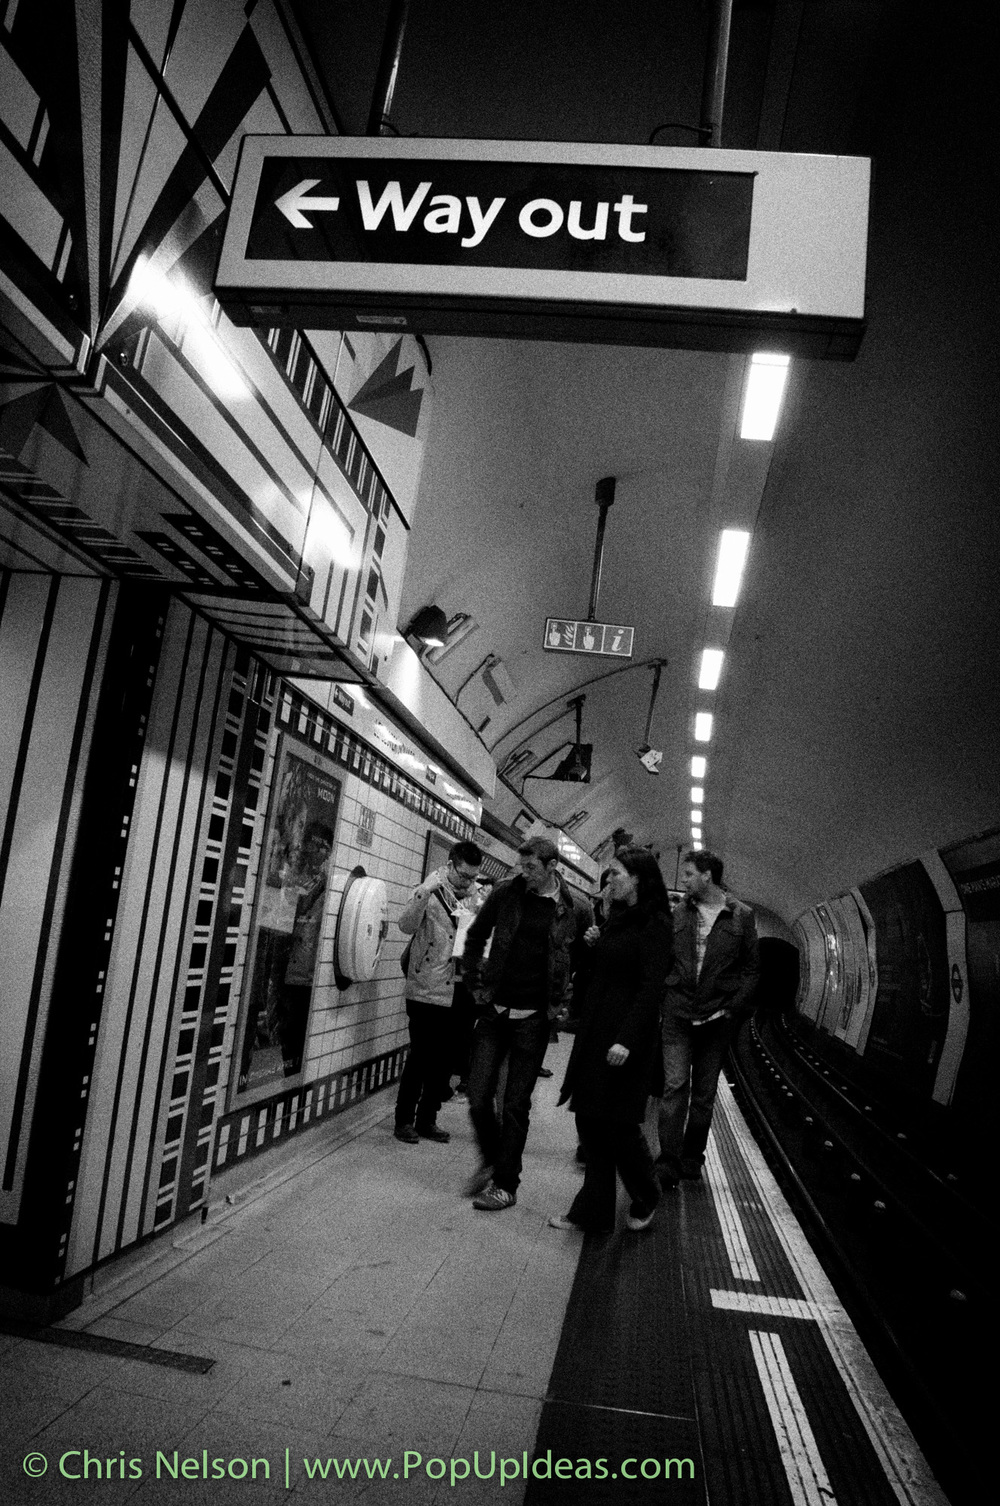 Street photography in the London Underground